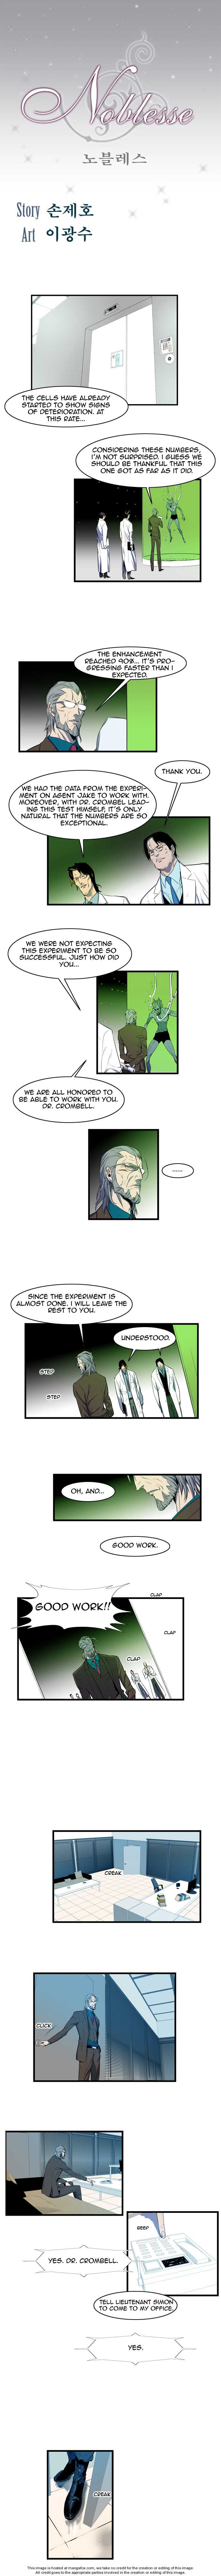 Noblesse 83 Page 1